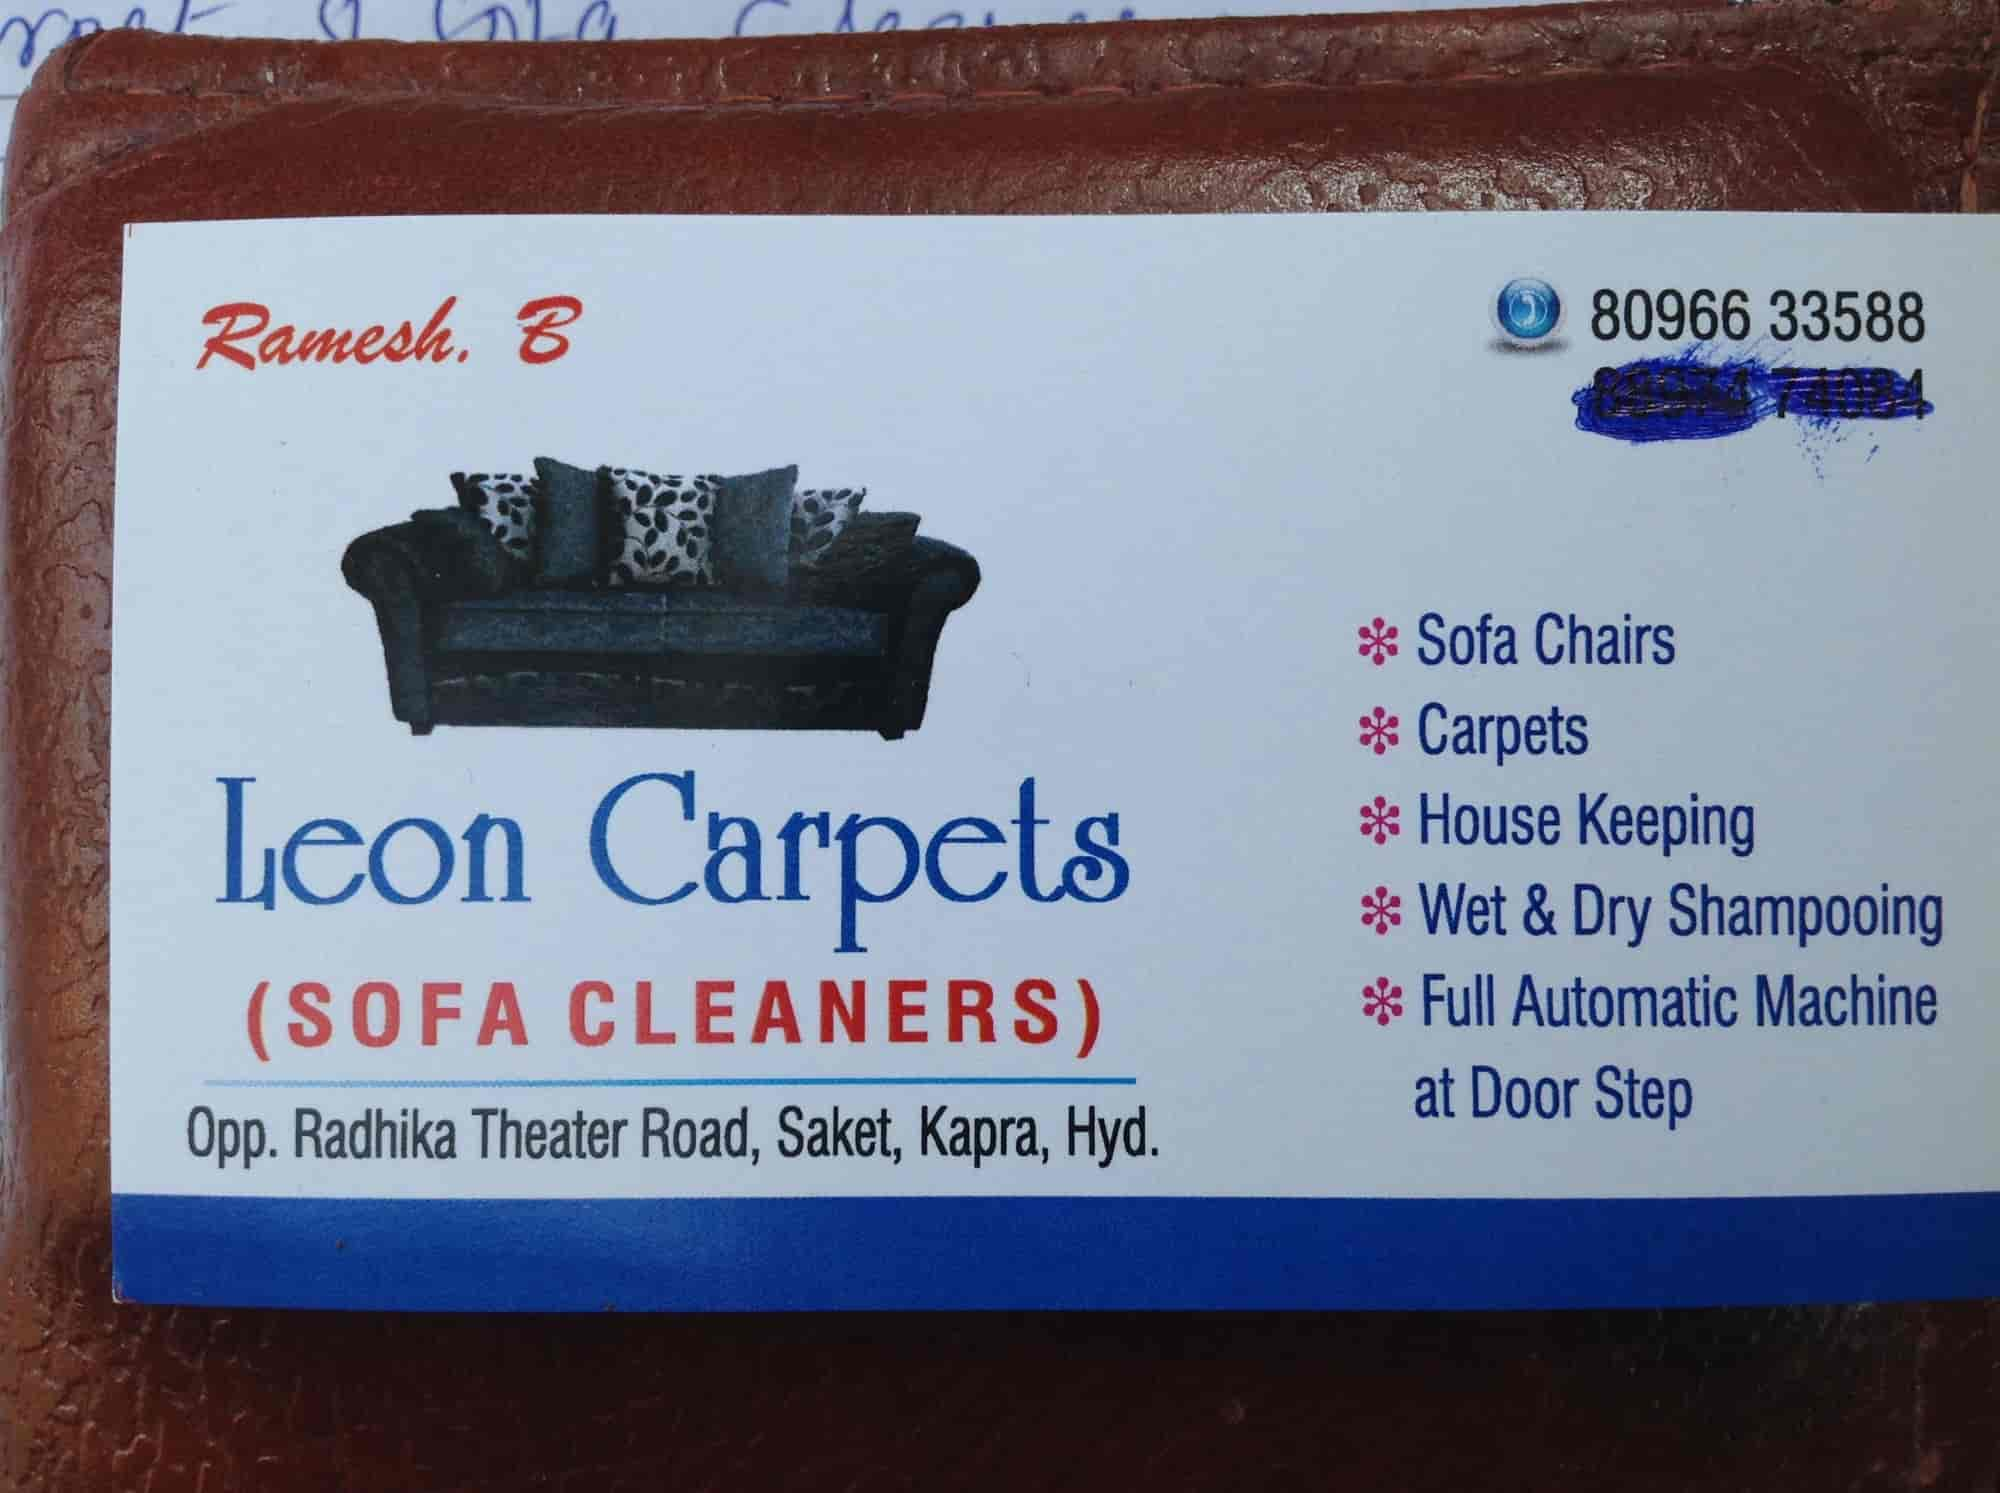 Visiting Card   Leon Carpets U0026 Sofa Cleaners Photos, Yapral, Hyderabad   Sofa  Cleaning ...